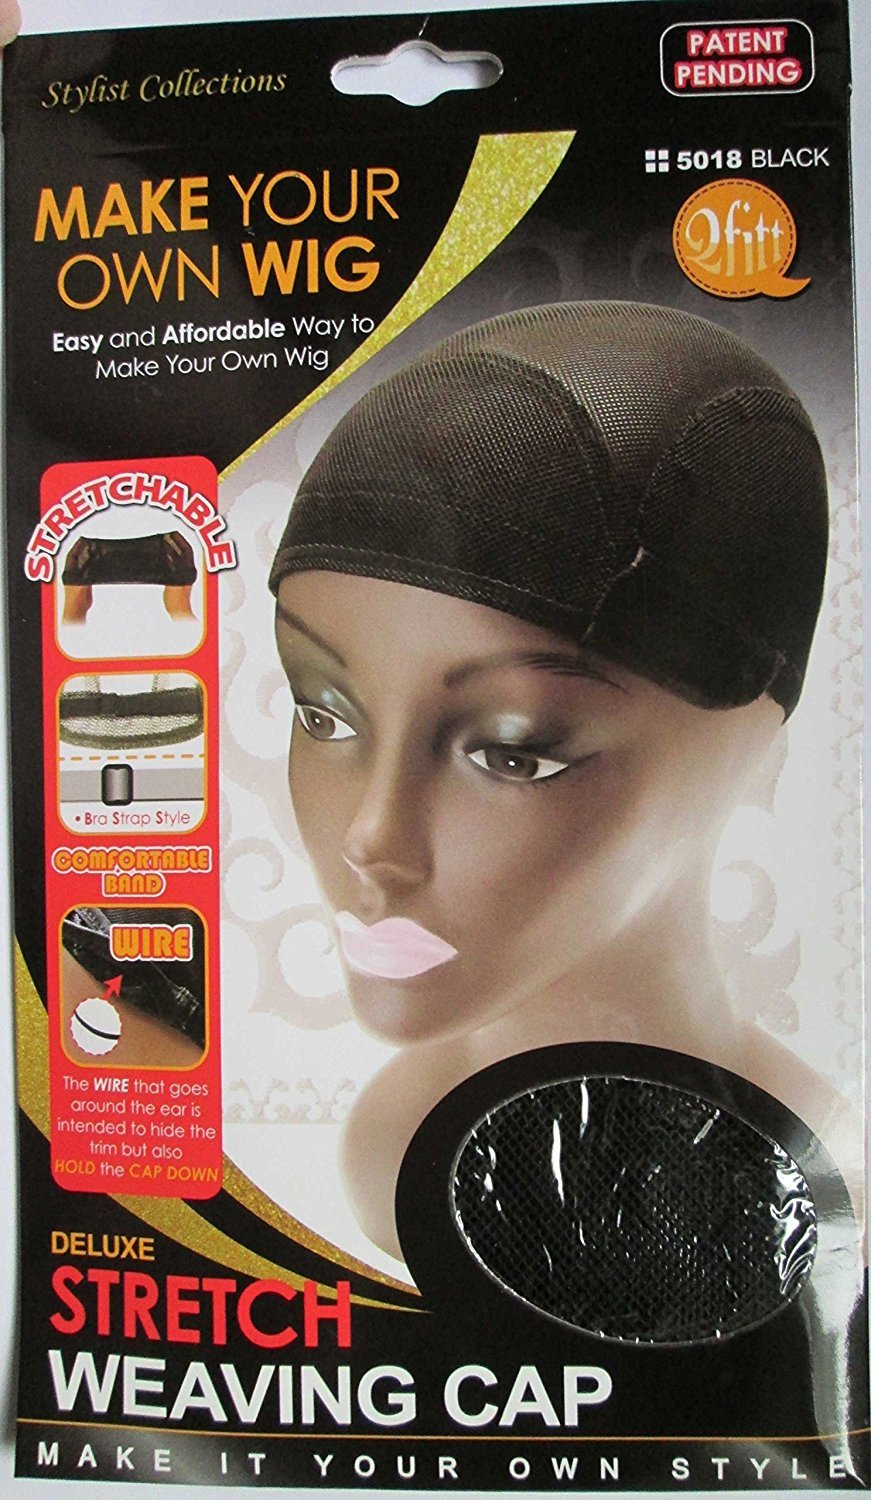 Amazon qfit make your own wig deluxe stretch weaving cap amazon qfit make your own wig deluxe stretch weaving cap 5018 beauty pmusecretfo Images